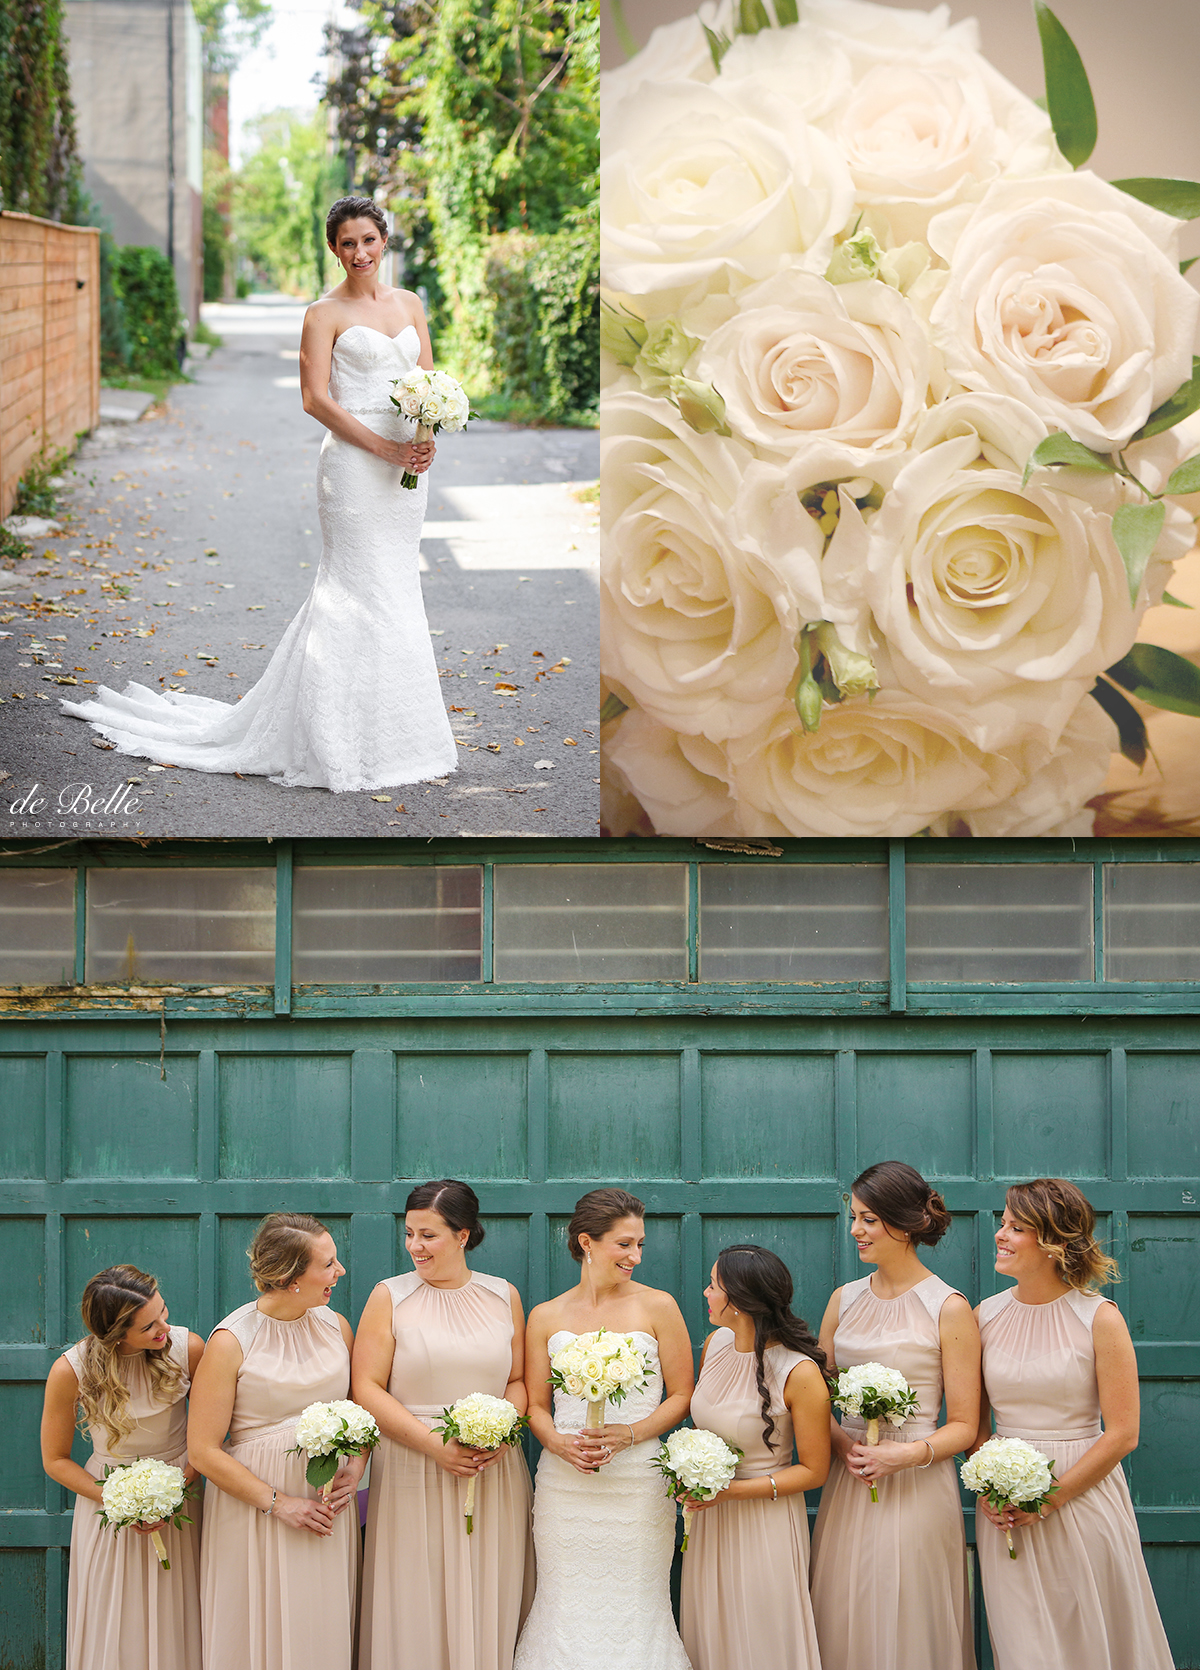 Montreal-Wedding-Photographer-Debelle-LD8